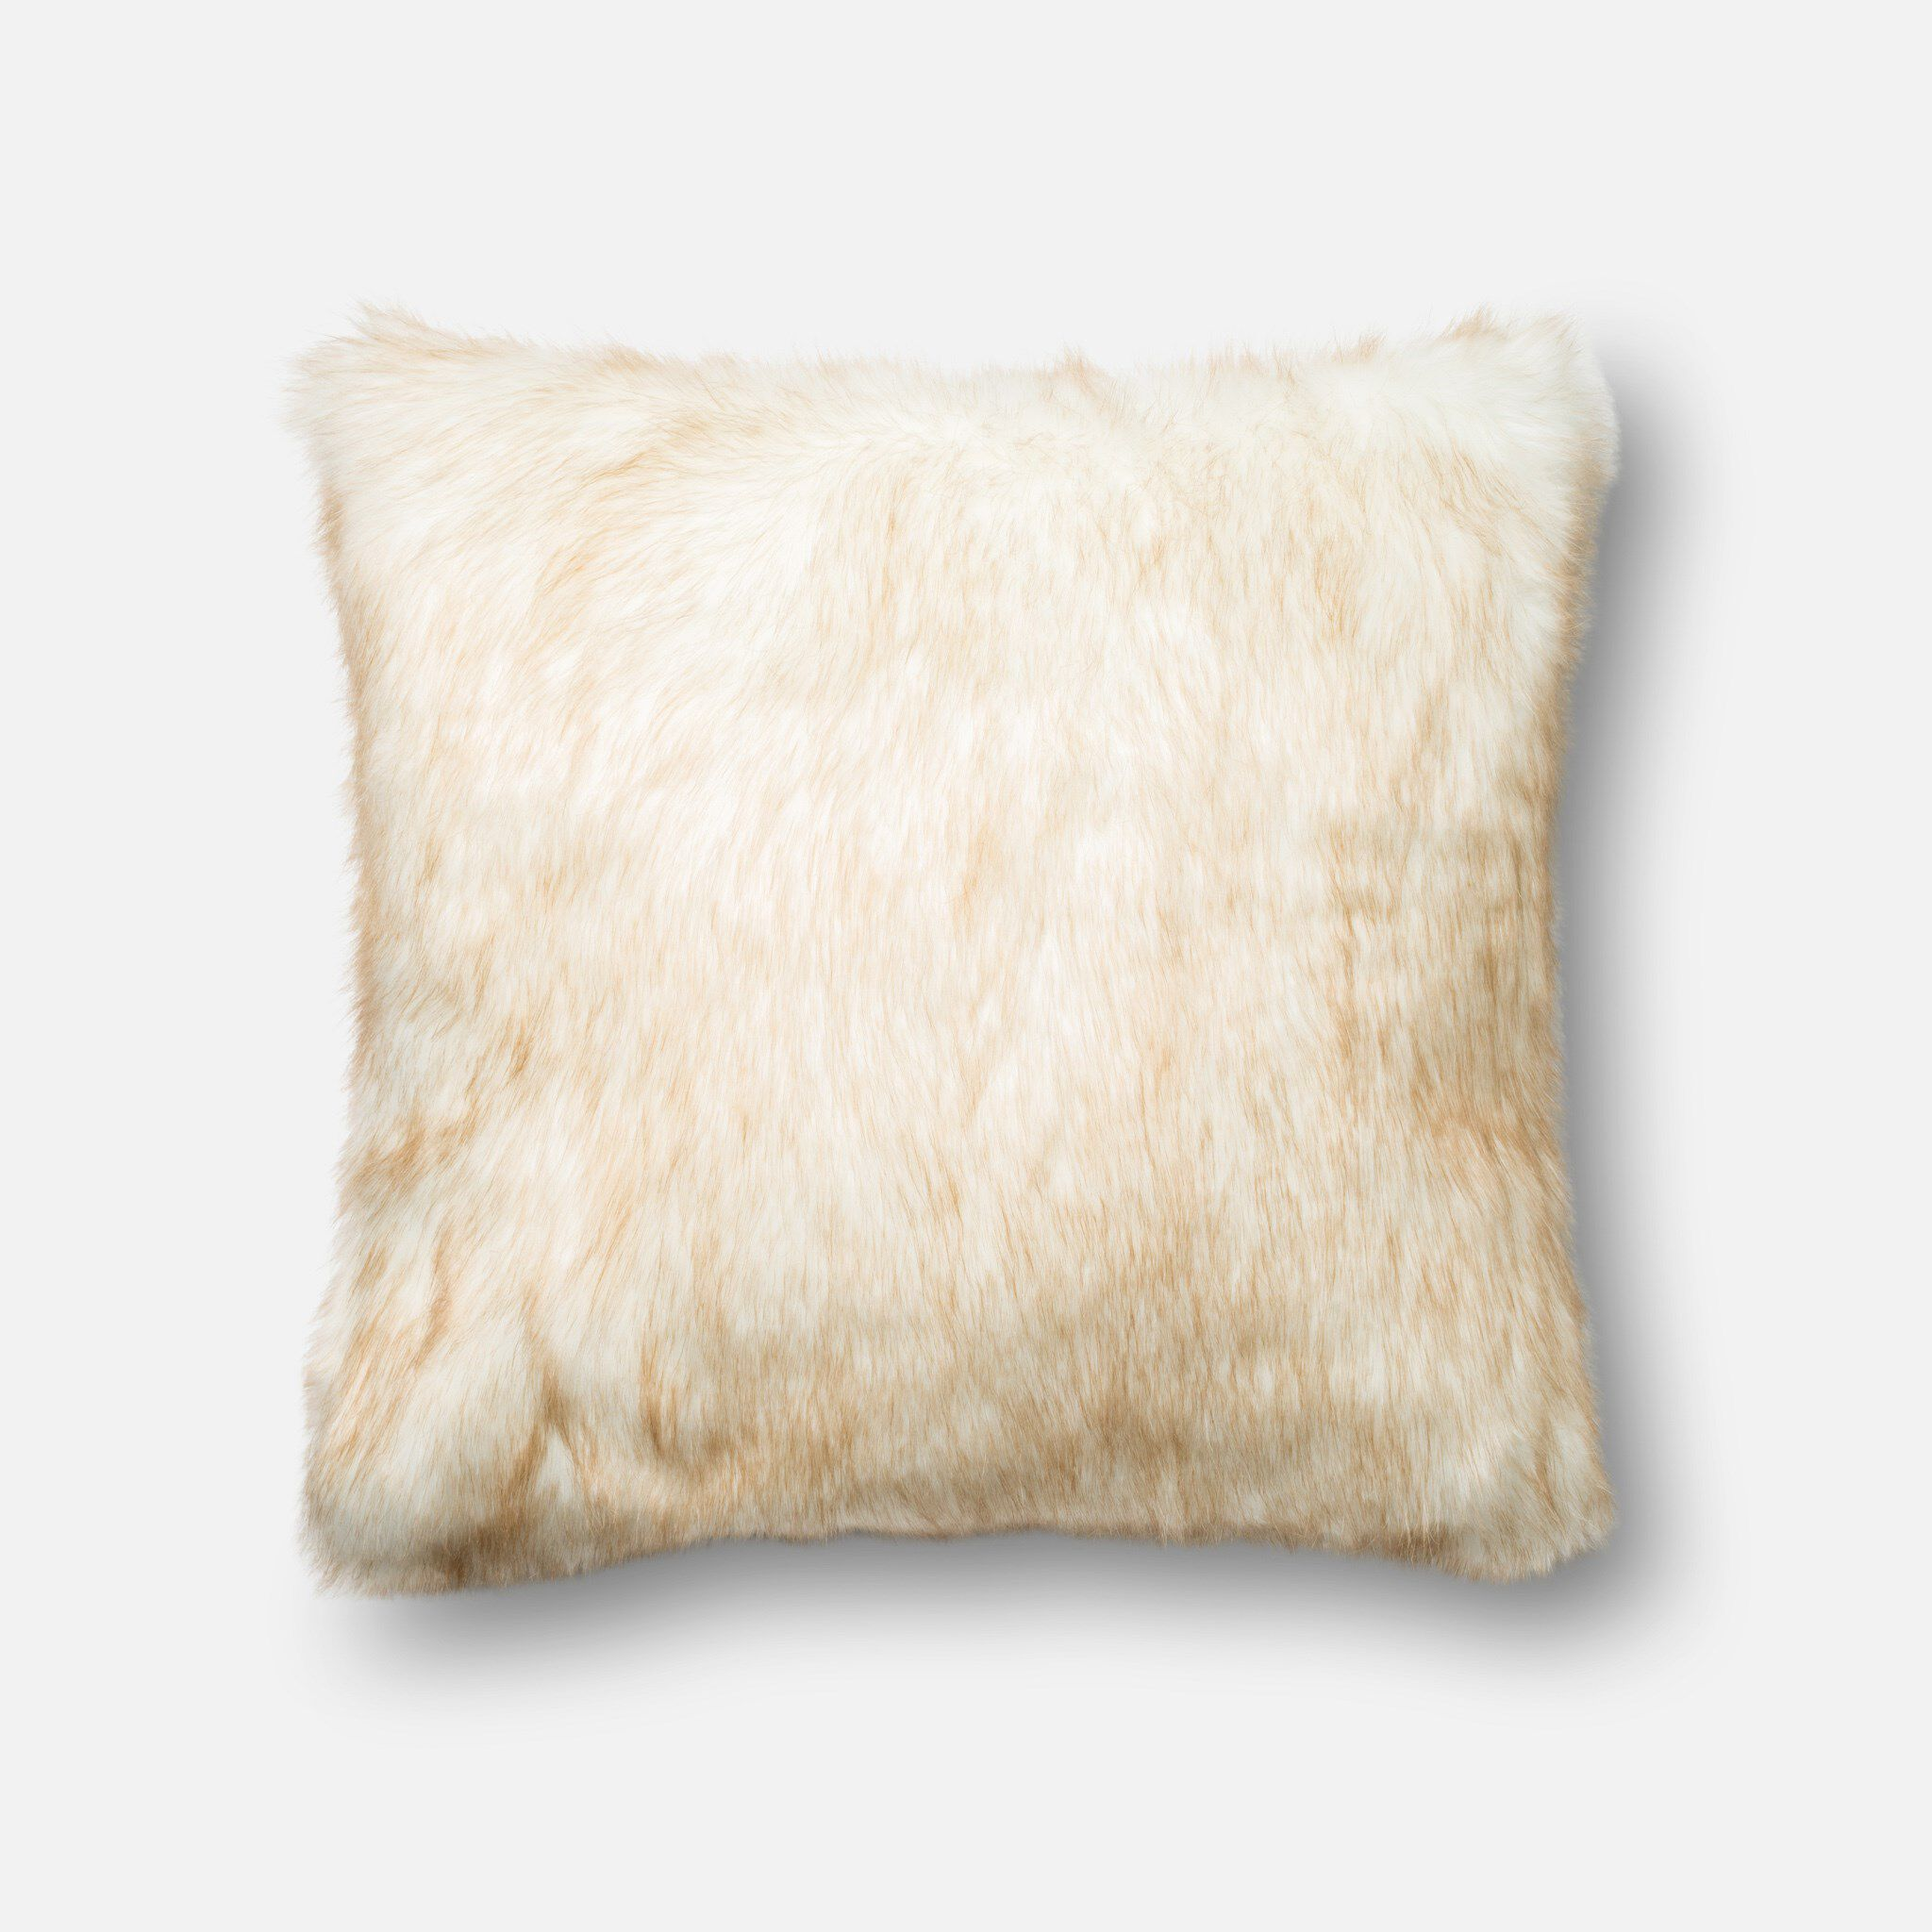 Loloi DSET Silver//Taupe Decorative Accent Pillow 22 x 22 Cover W//Down